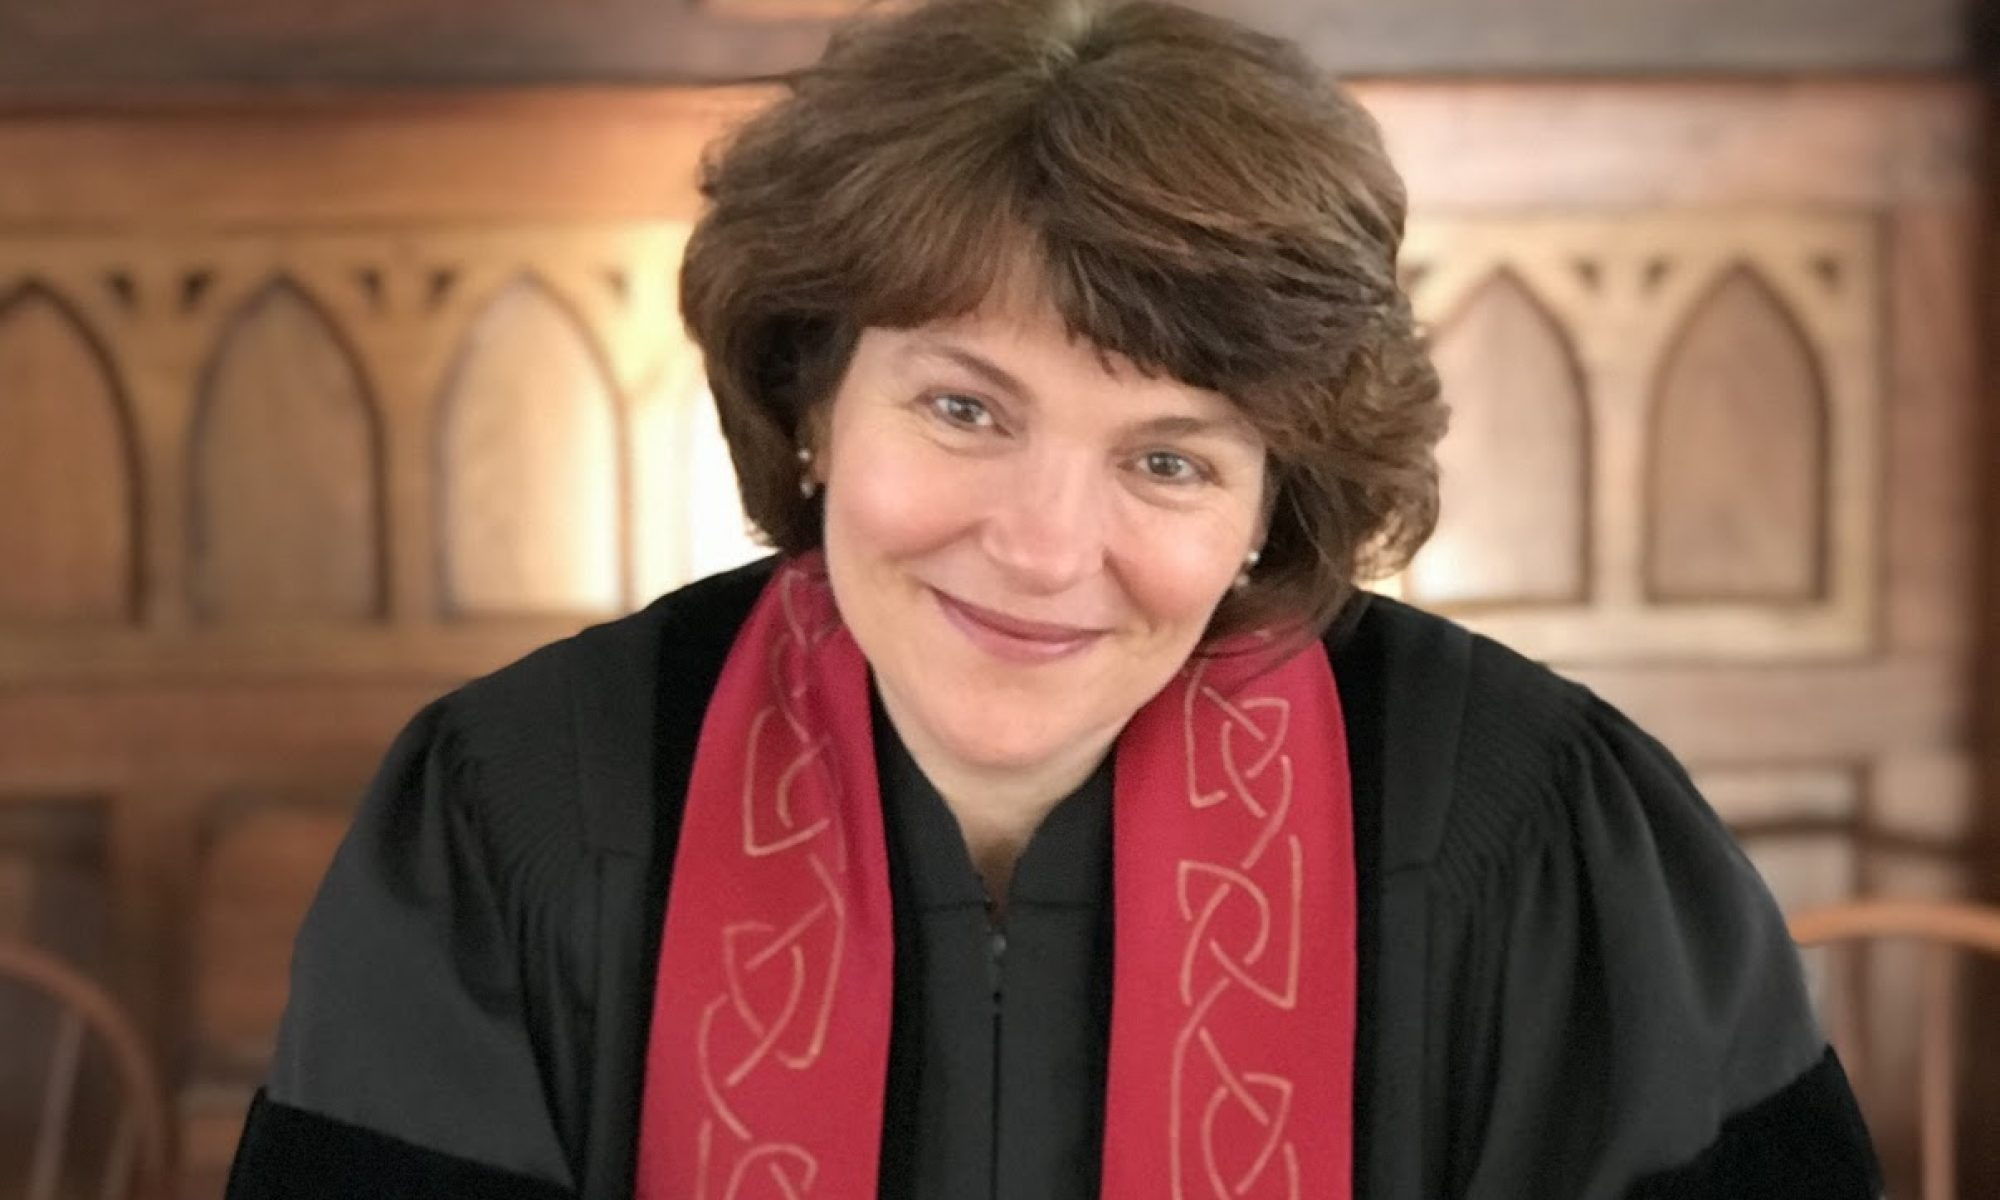 Rev. Susanne Intriligator